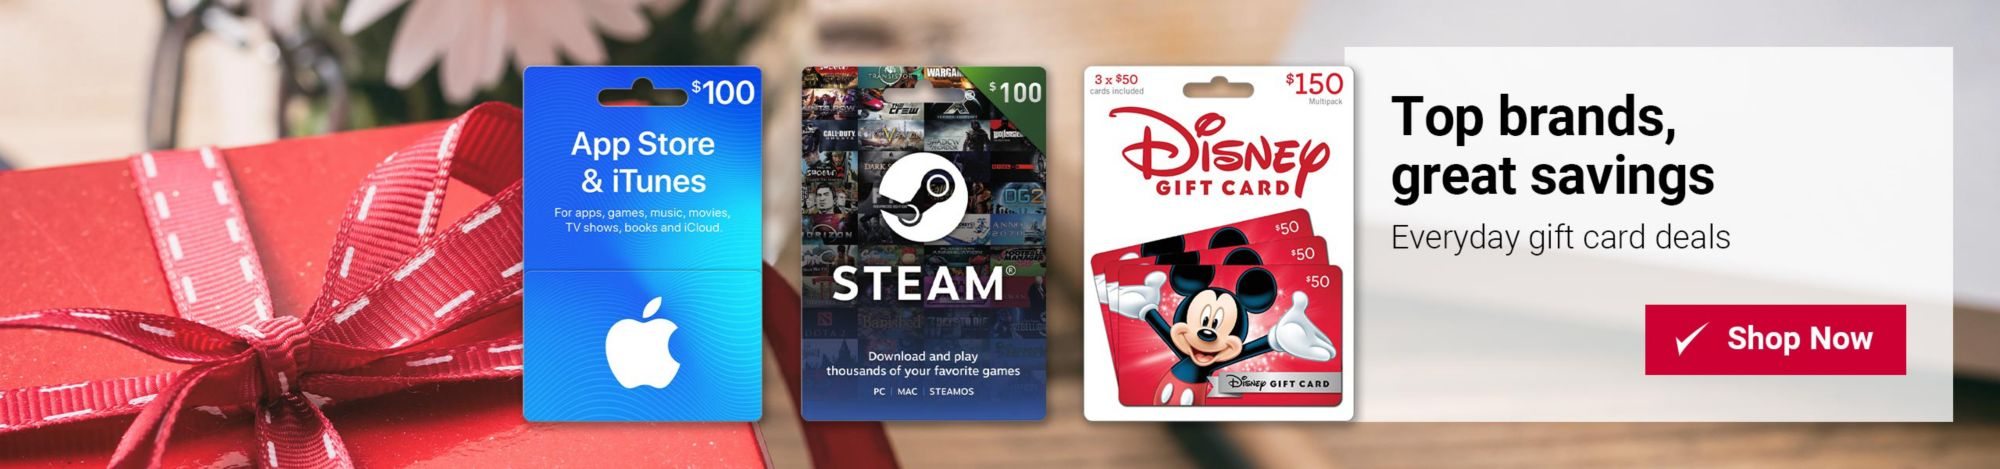 Top brands, great savings, everyday gift card deals. Featured items include $100 App Store & iTunes gift card, $100 Steam gift card, and $150 Disney gift card. Click to shop now.